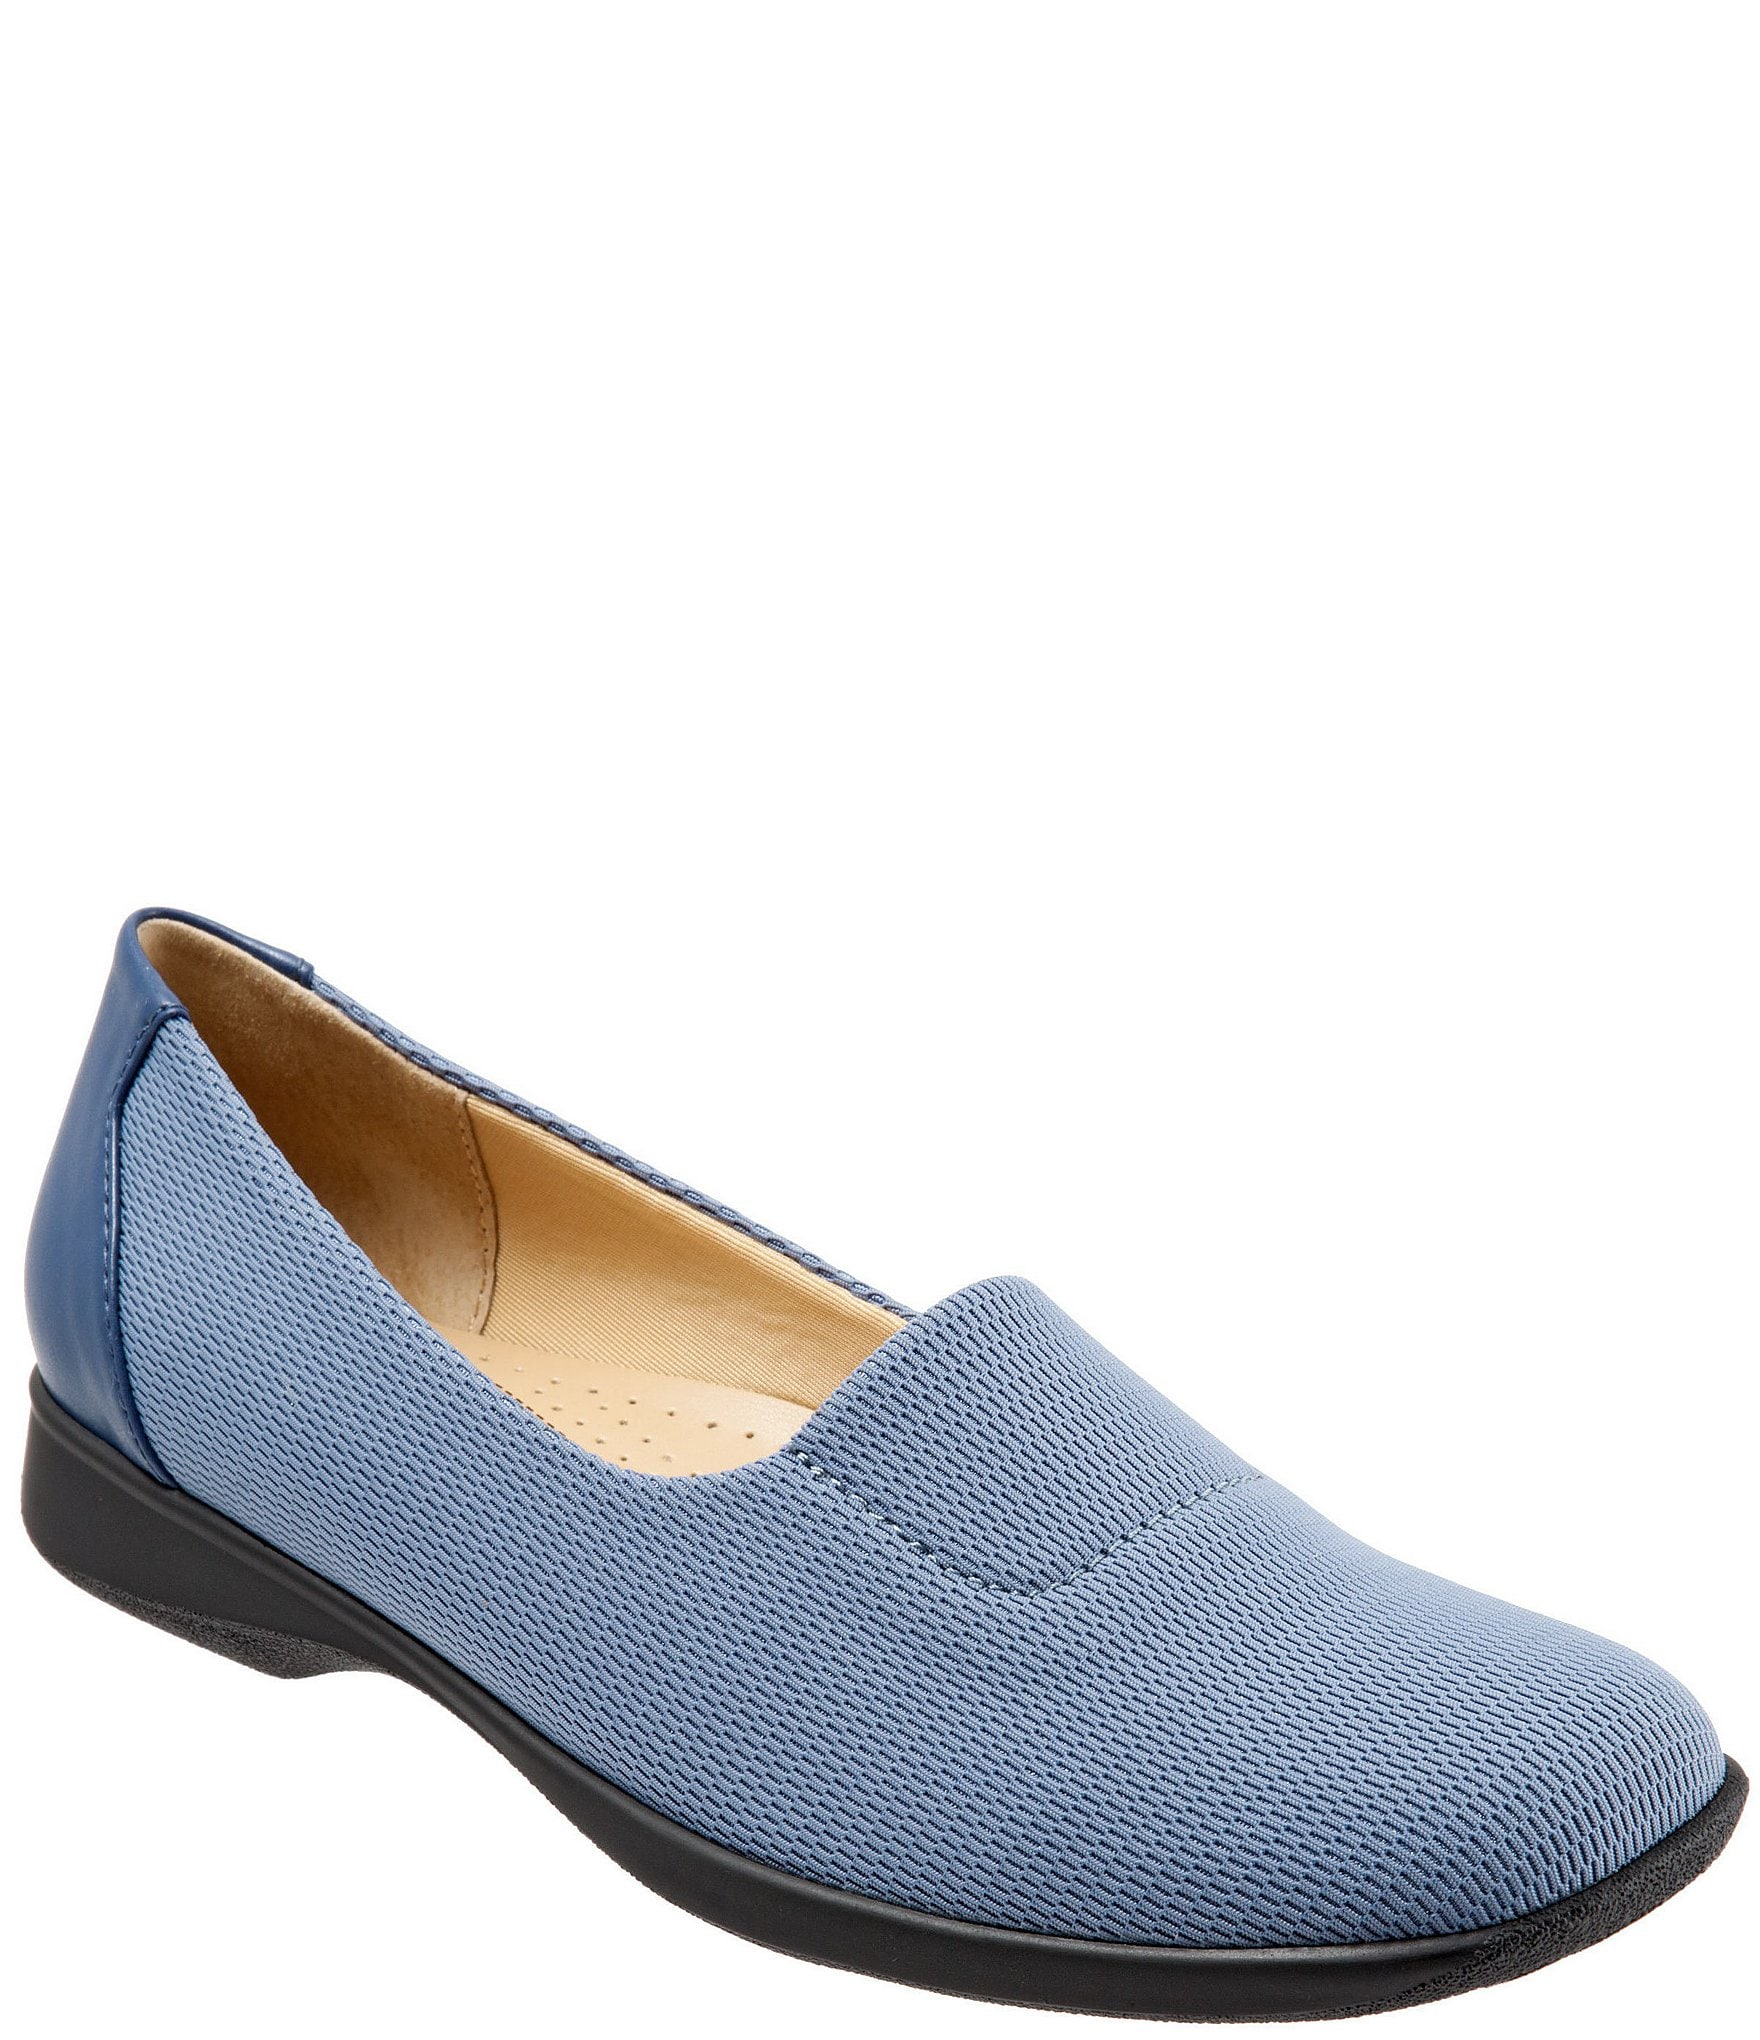 5f7bf349e59 Blue Women s Loafers